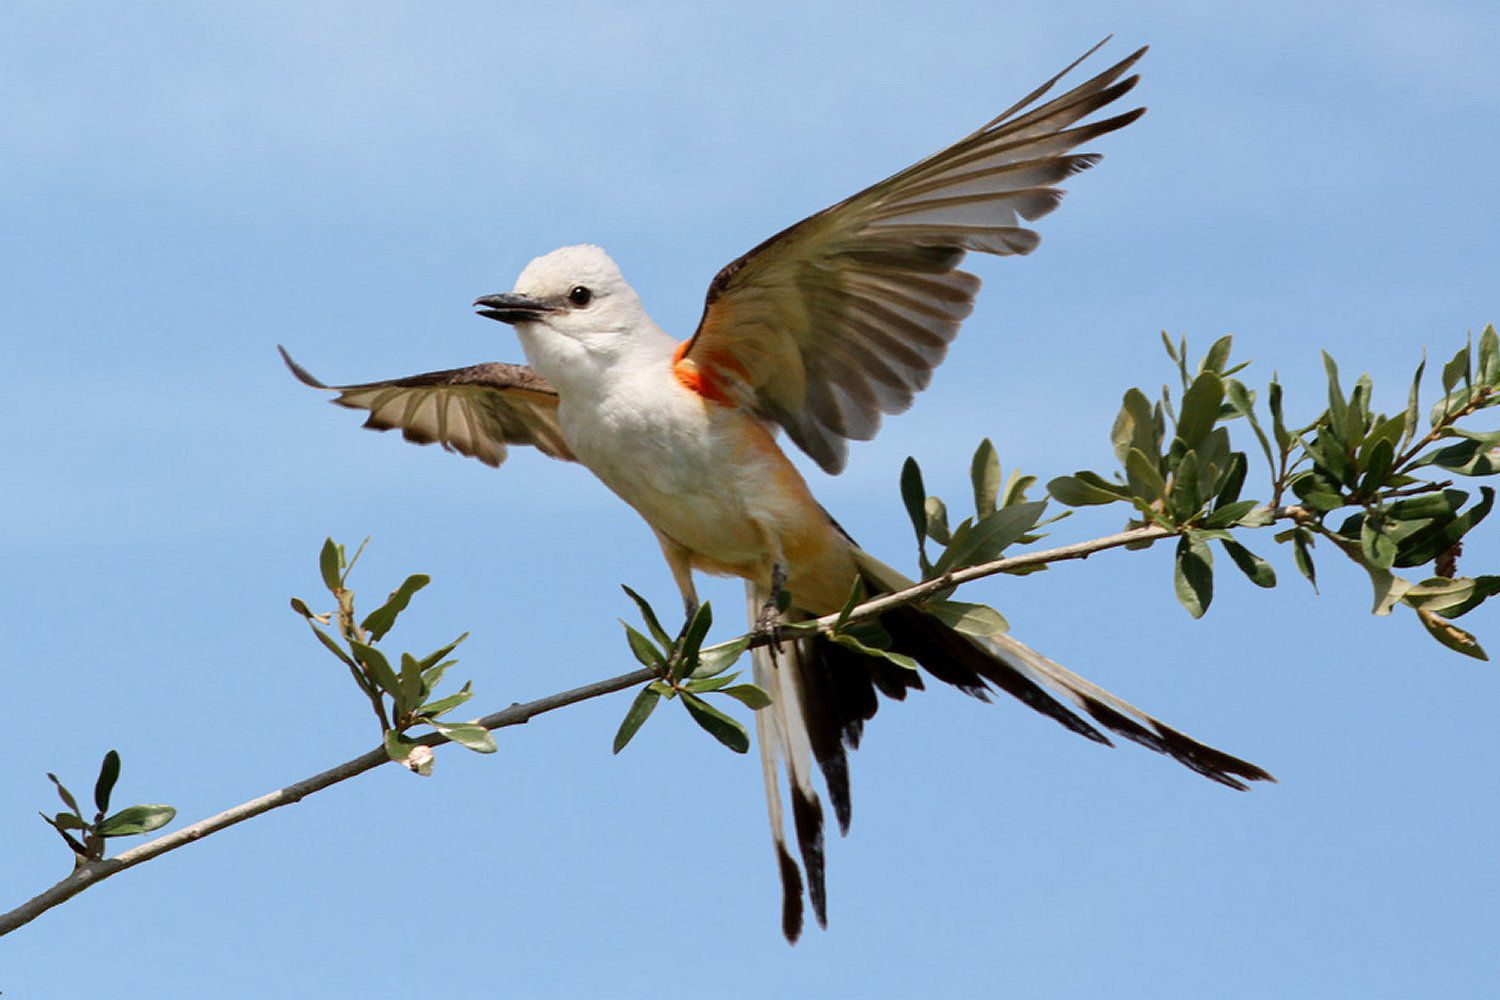 Scissor-Tailed Flycatcher, the state bird of Oklahoma, ready to fly off a branch.